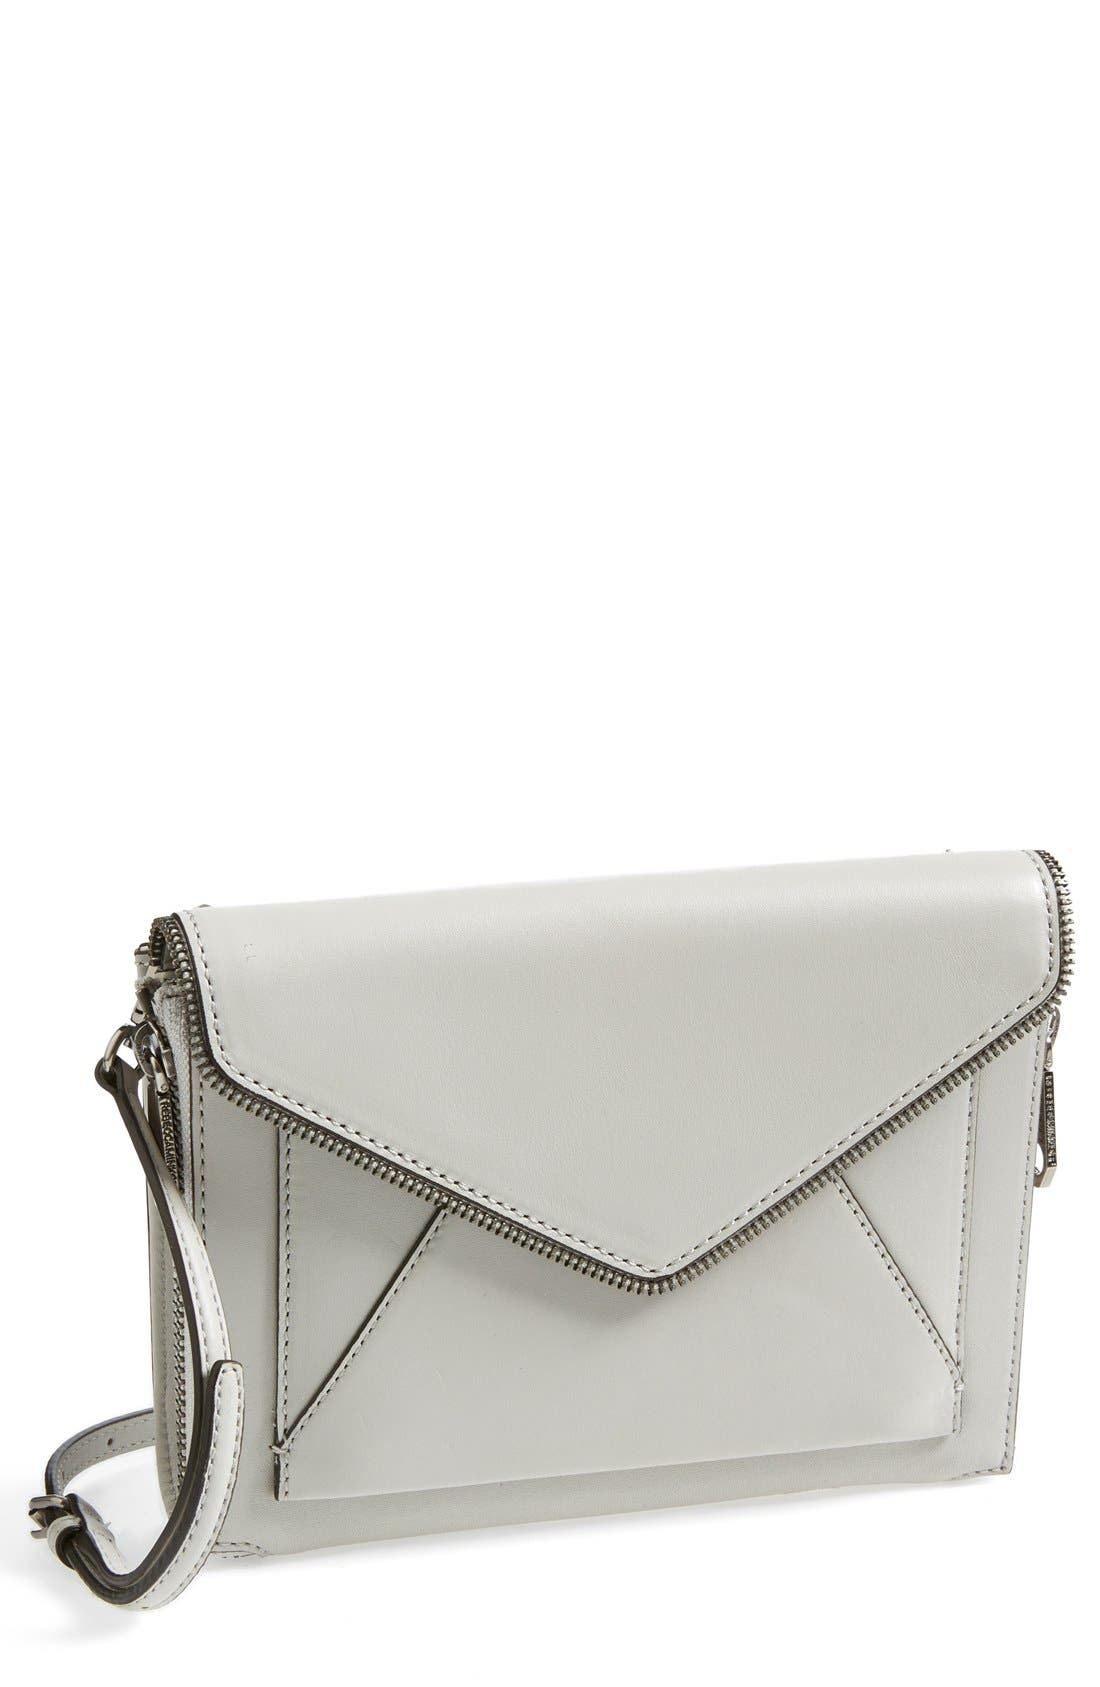 Alternate Image 1 Selected - Rebecca Minkoff 'Marlowe' Mini Crossbody